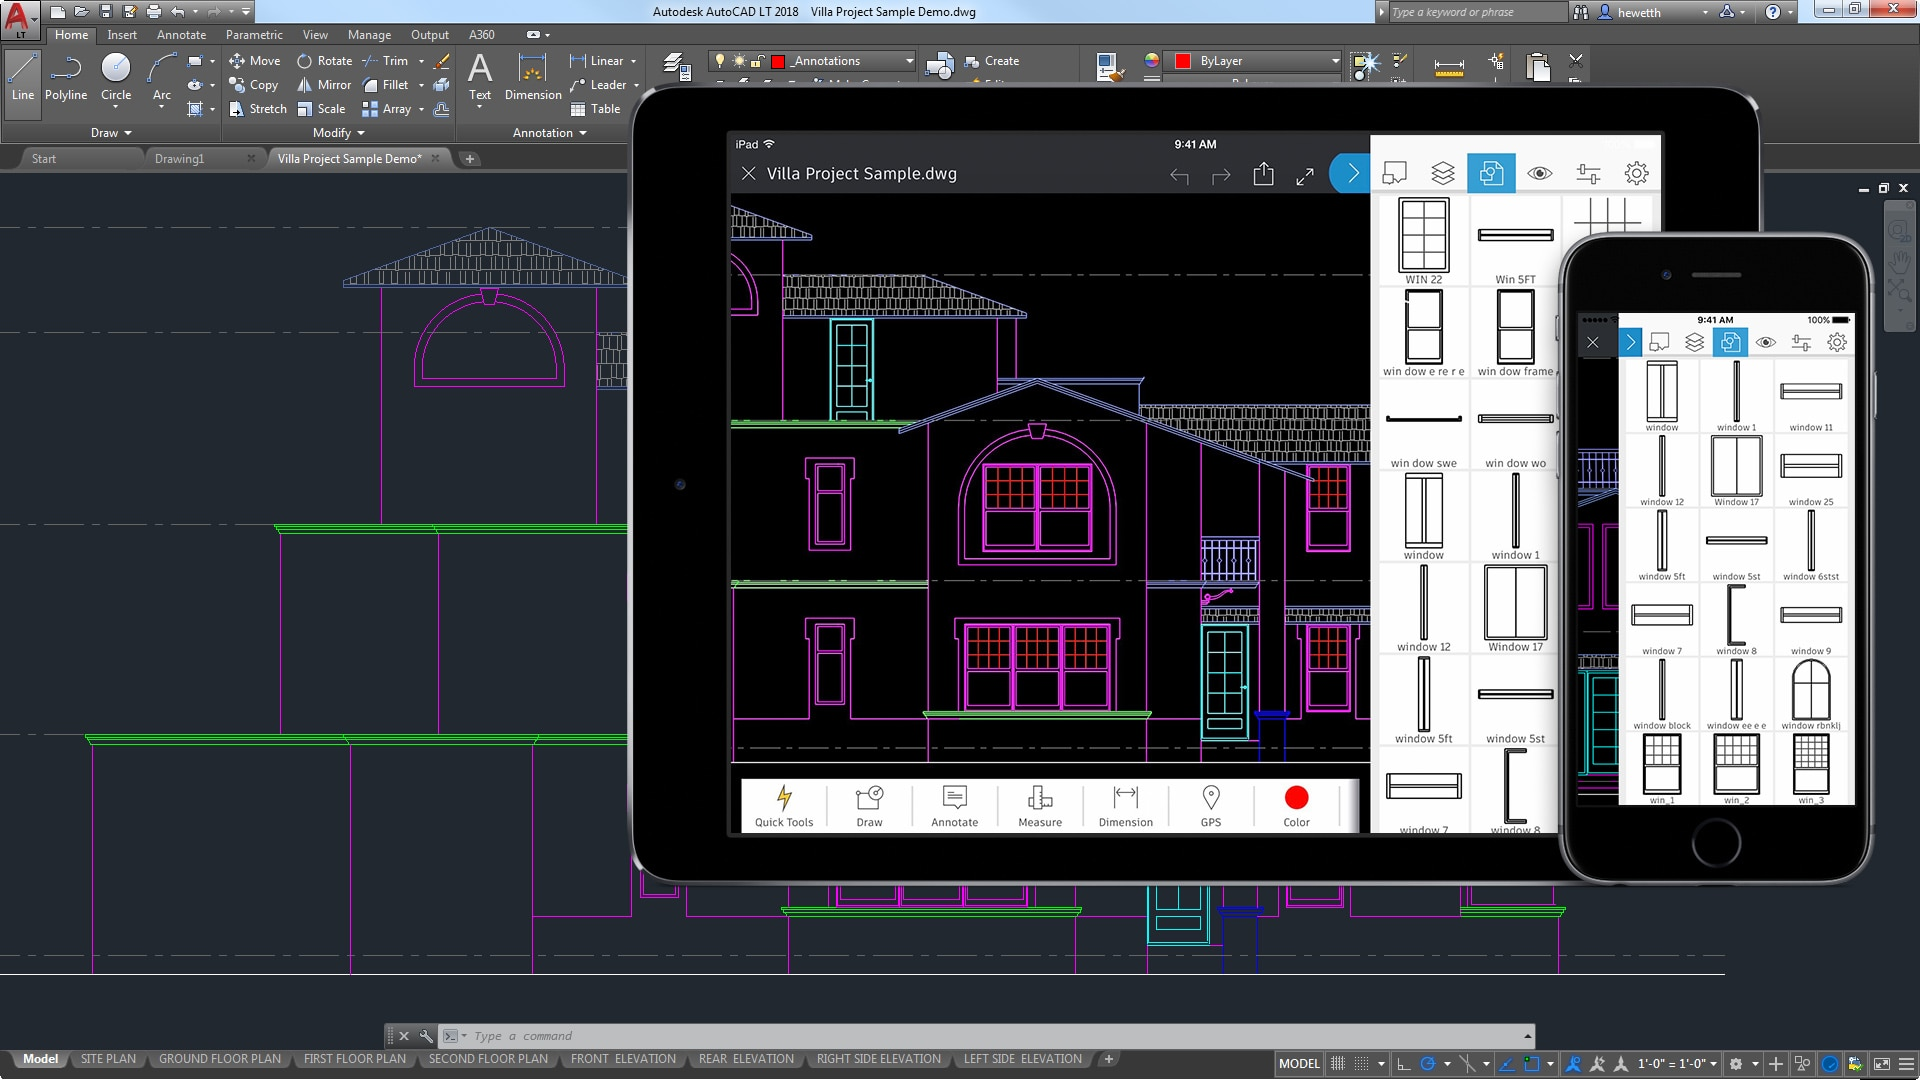 Autocad Lt 2d Drafting Drawing Software Autodesk Tool That S Free For Users To Design And Draw Circuit Connected Collaboration